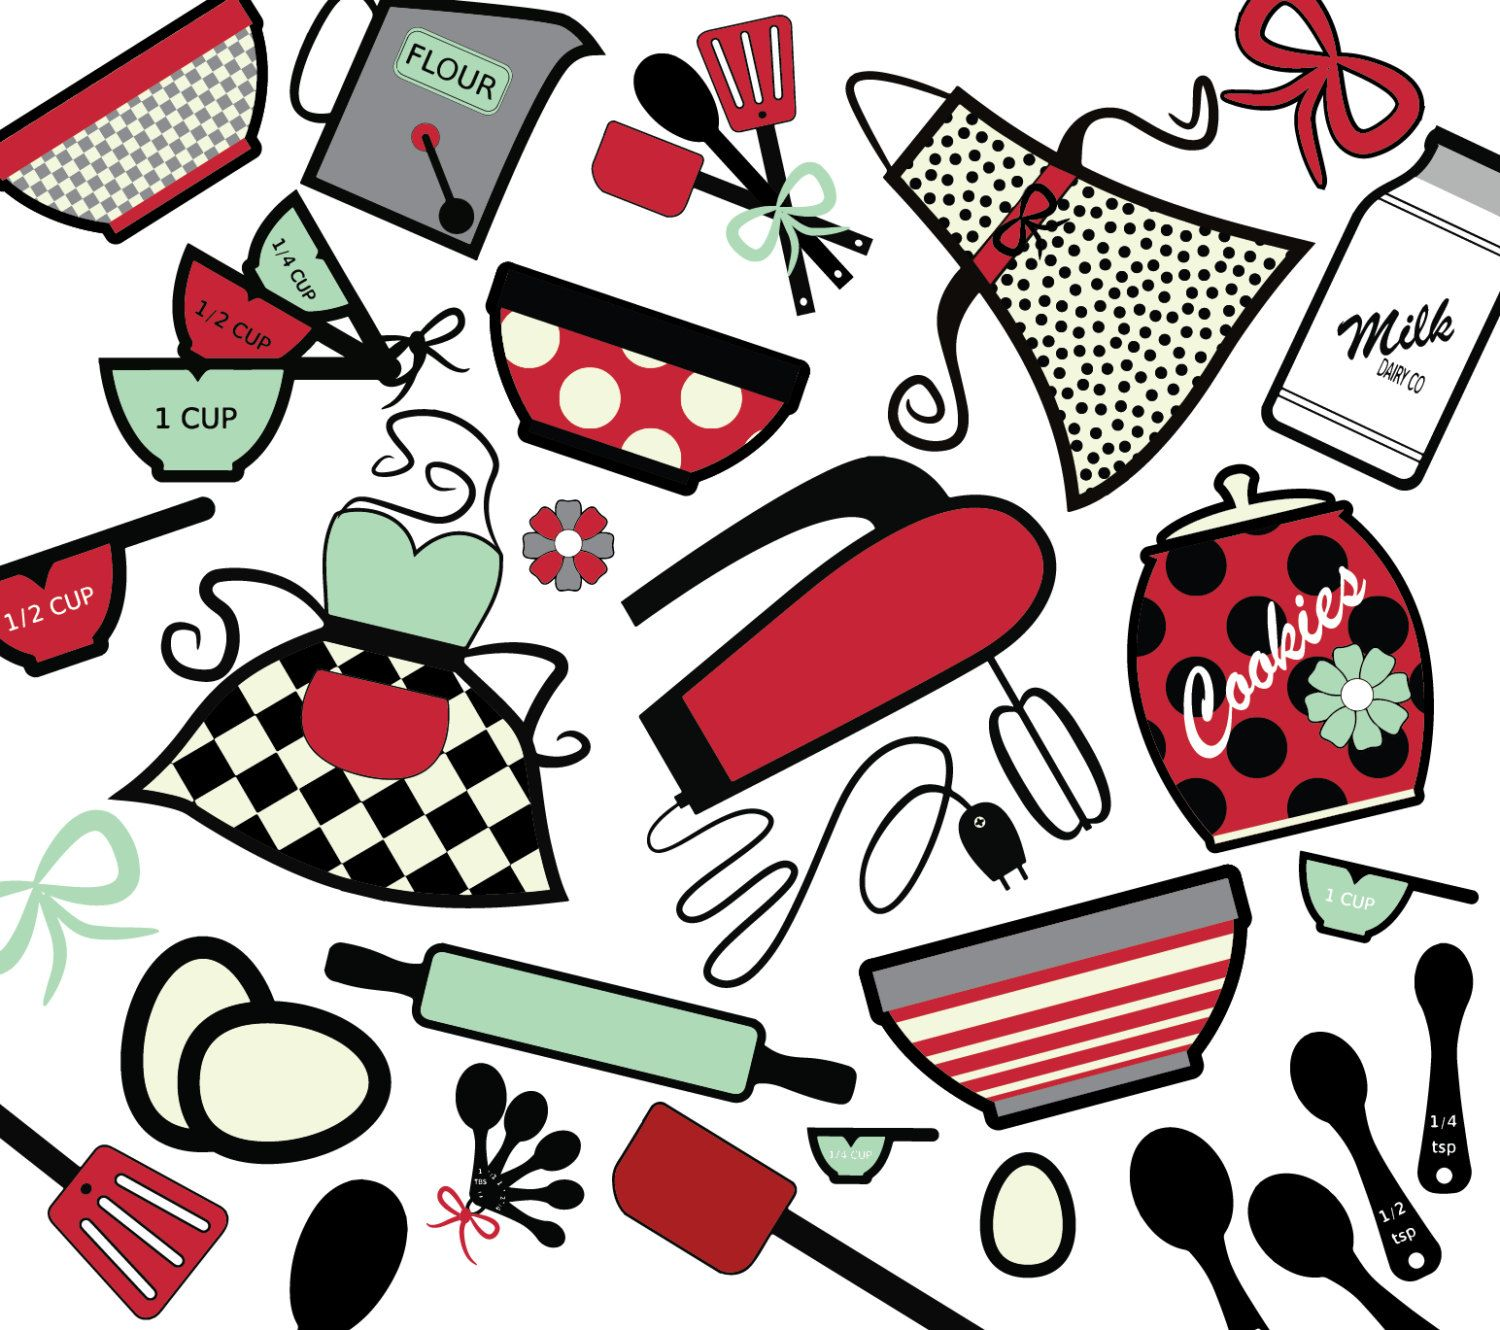 baking 20clipart backgrounds fb cover photos phone wallpaper rh pinterest com clipart free download for commercial use clipart free download for commercial use